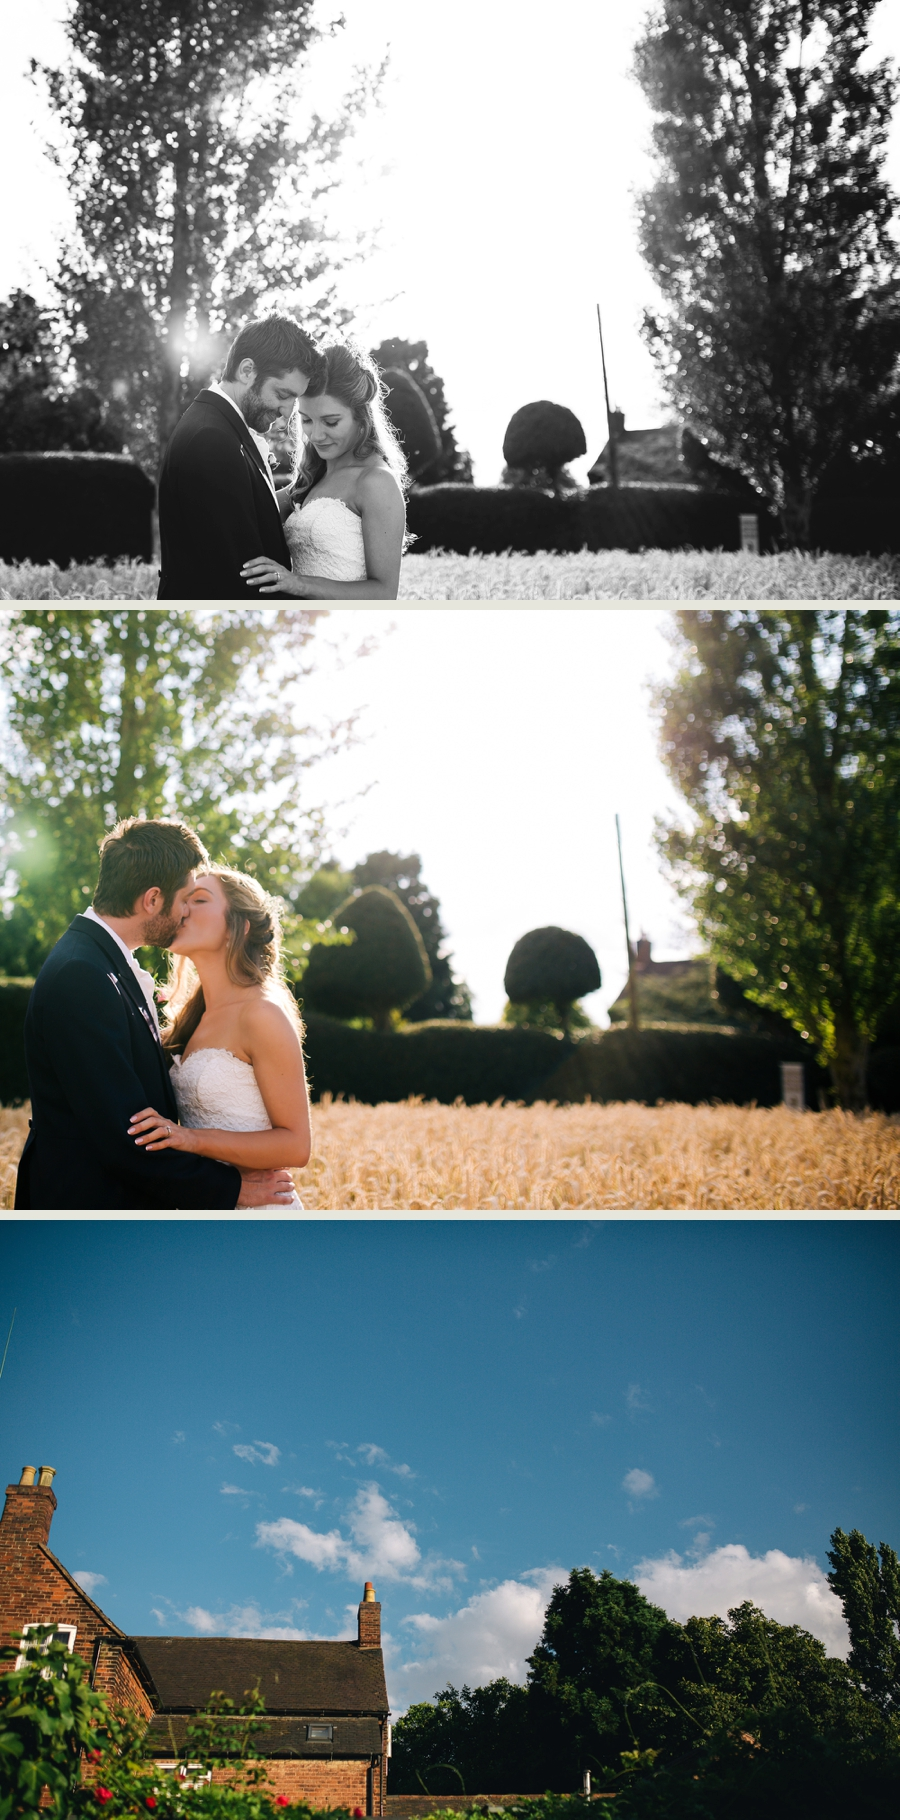 Somerset wedding photographer Packington Moor Wedding Emily and Lee 22